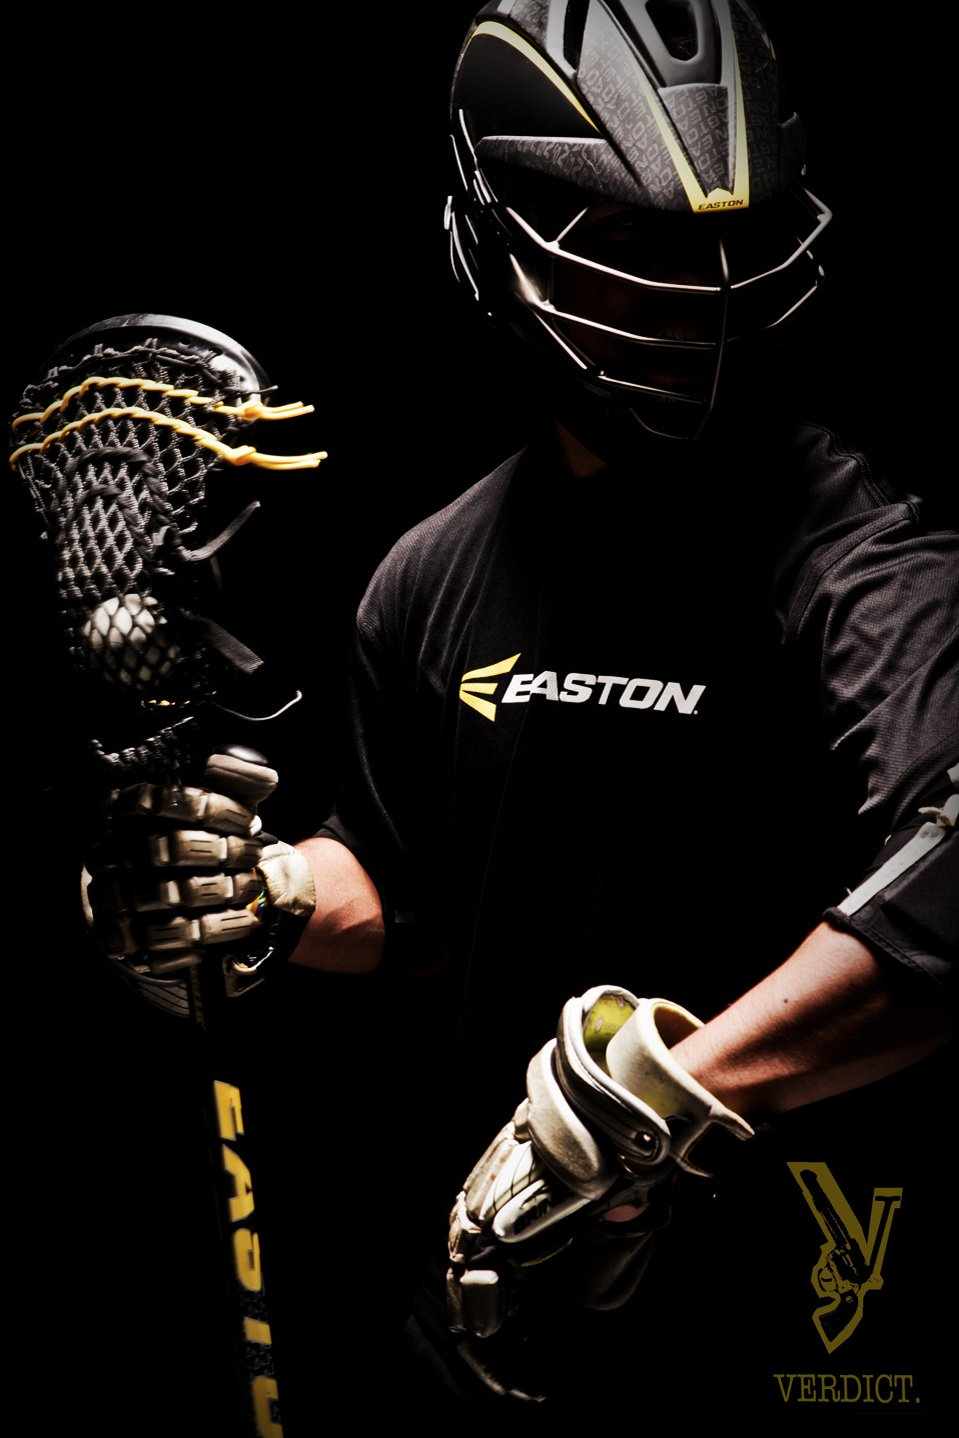 Free Download Lacrosse Backgrounds For Iphone Easton